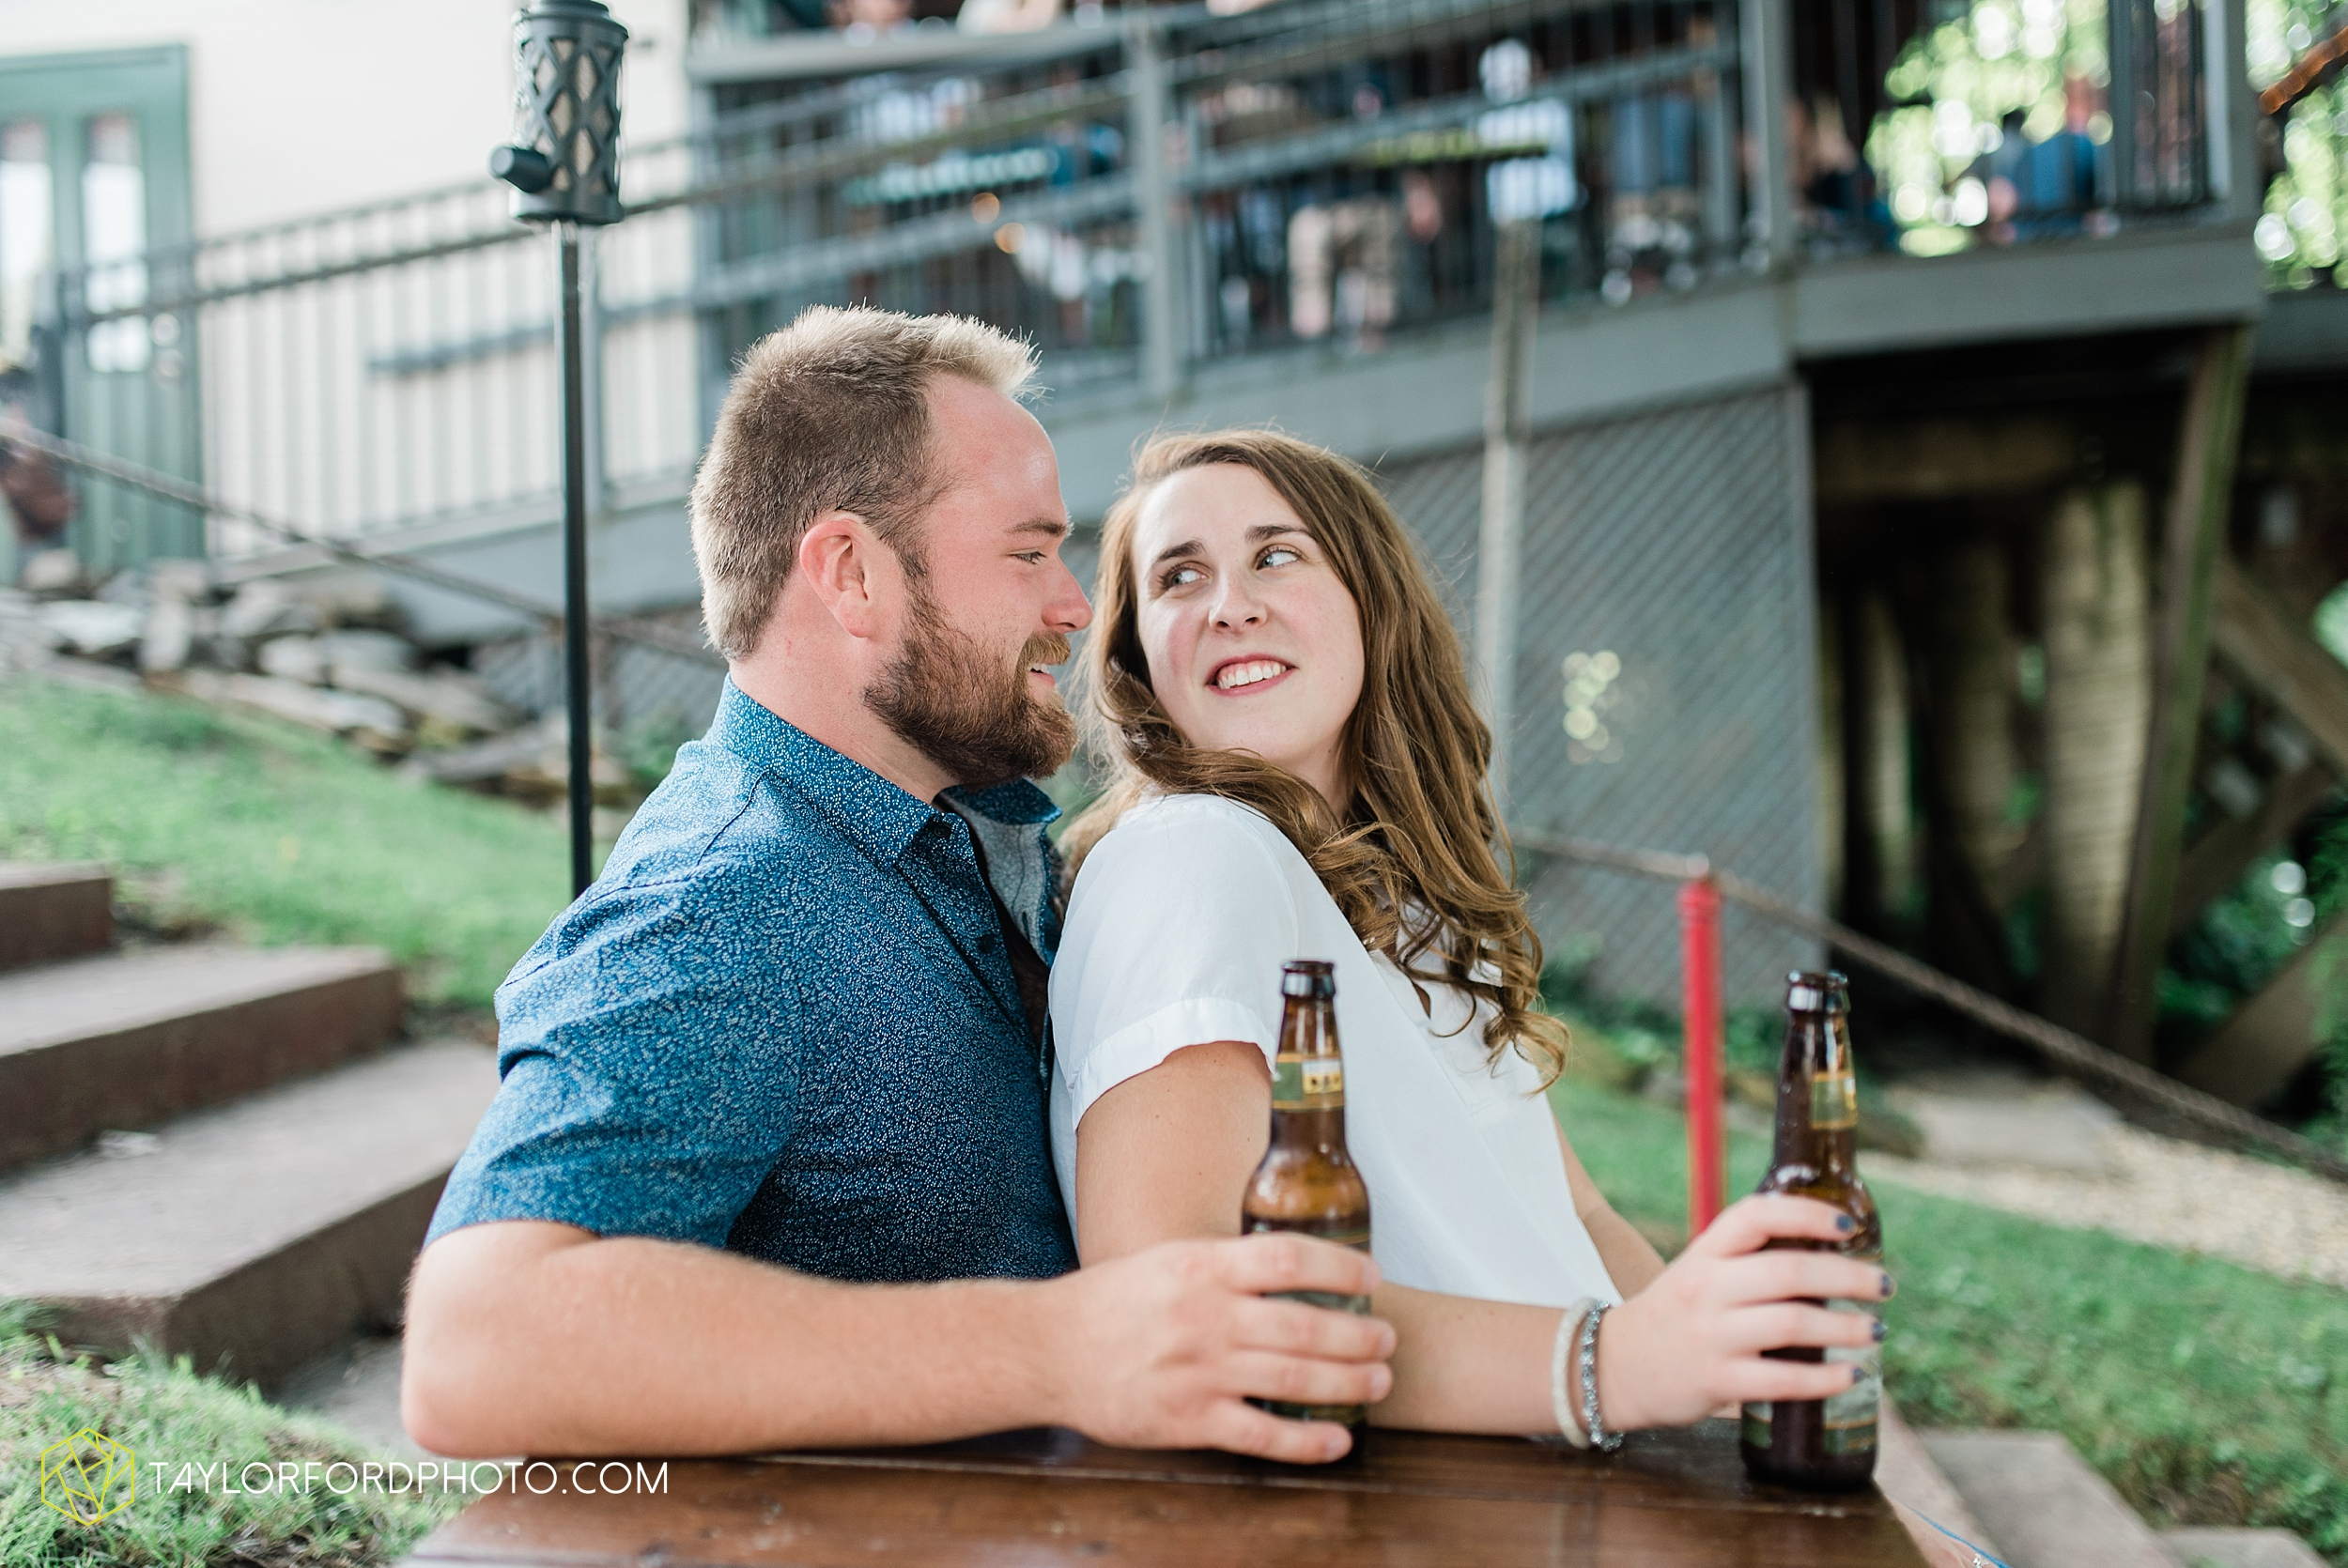 chelsey-jackson-young-downtown-fort-wayne-indiana-the-halls-deck-engagement-wedding-photographer-Taylor-Ford-Photography_8218.jpg